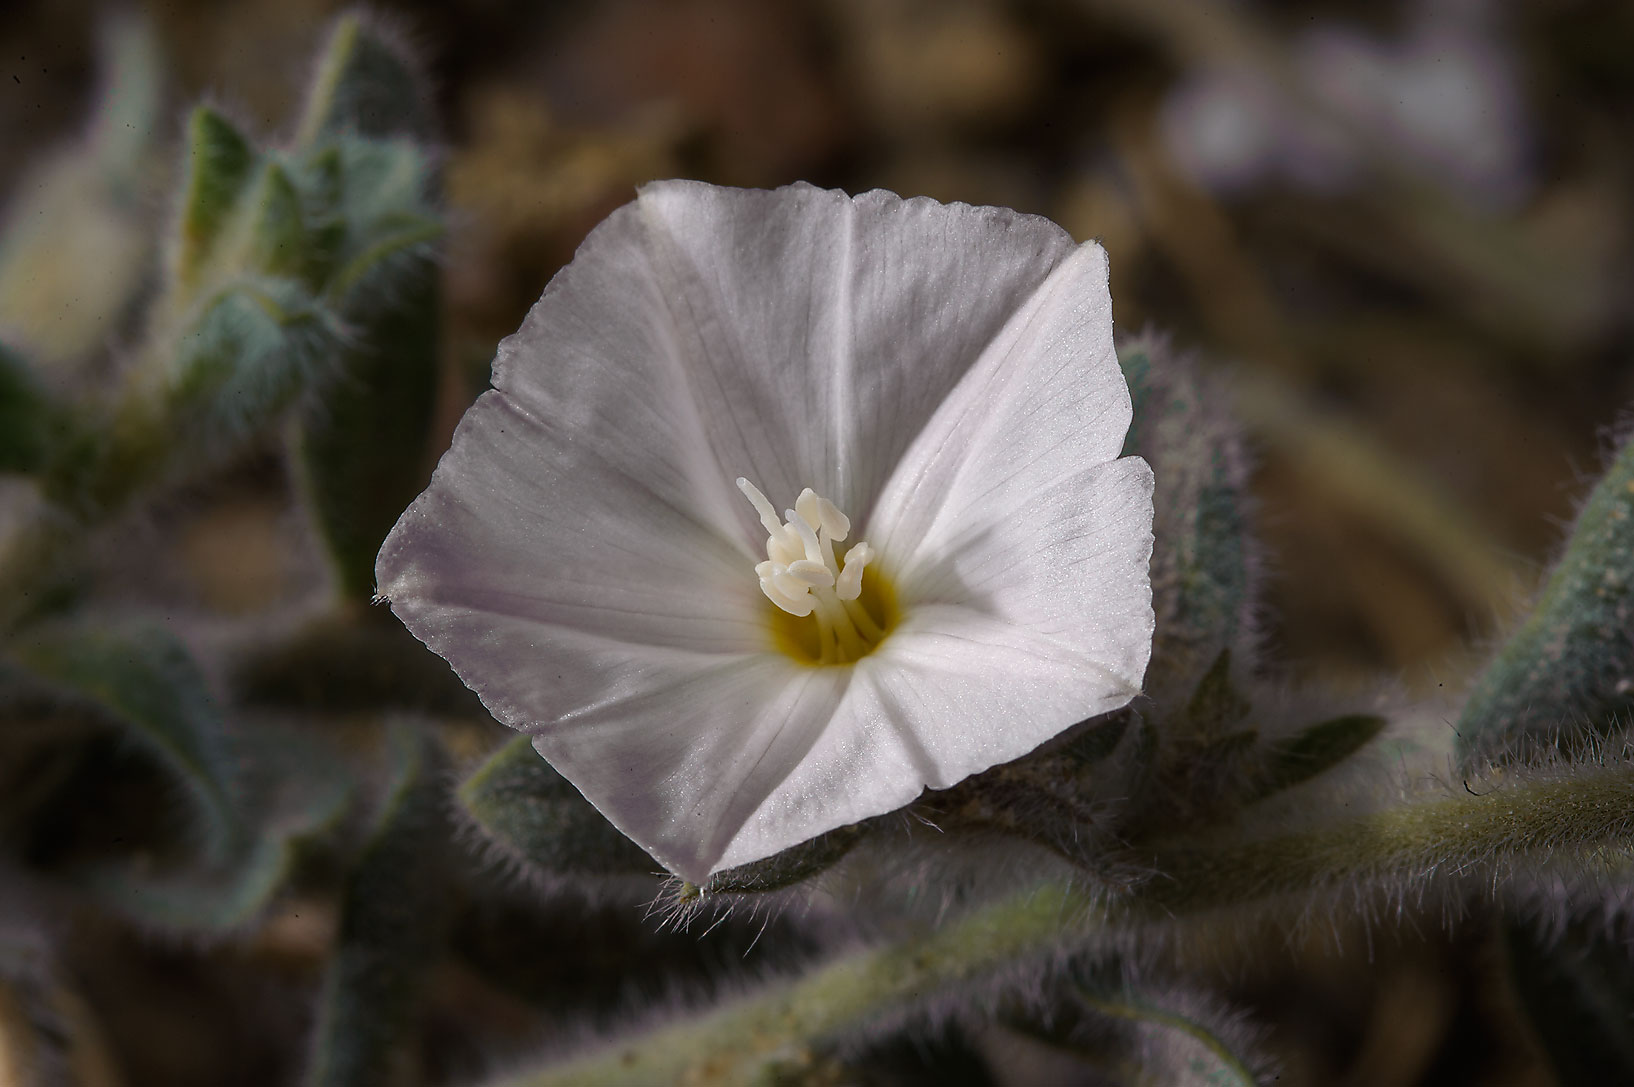 Desert species of Morning glory (Convolvulus...of Salwa Rd. in south-western Qatar